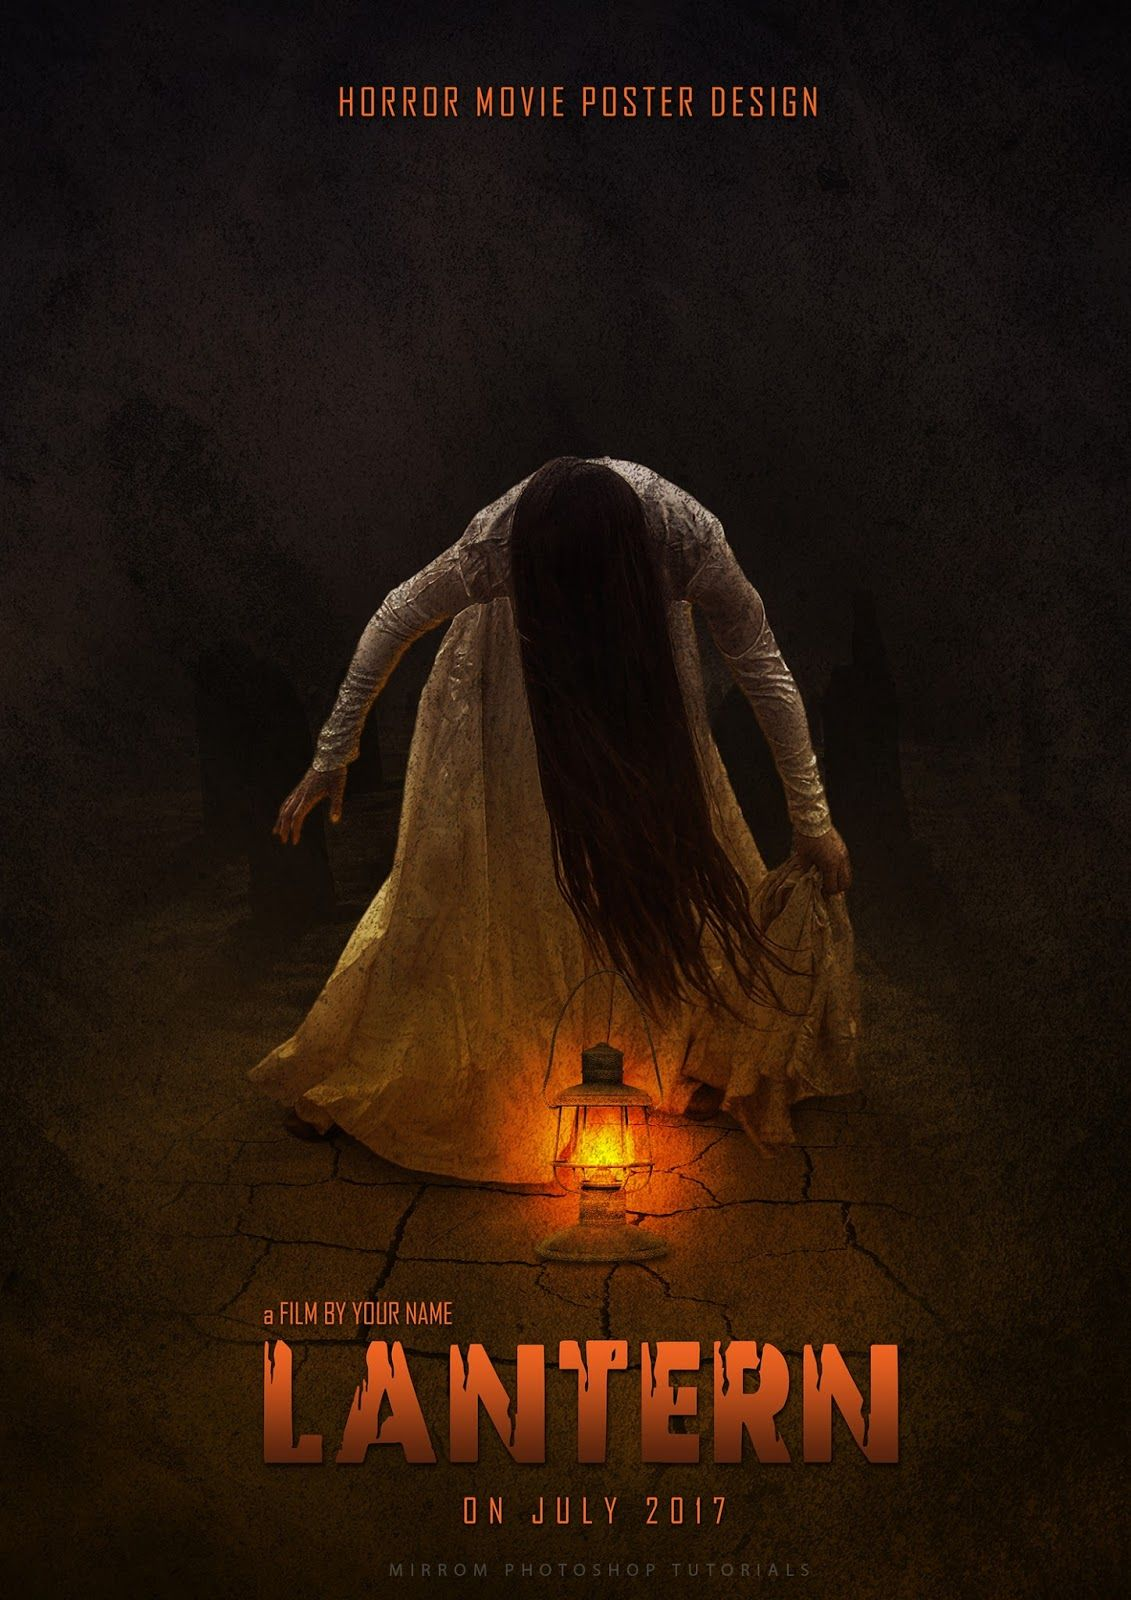 Create A Creepy Horror Movie Poster In Photoshop Creepiest Horror Movies Movie Posters Design Movie Posters